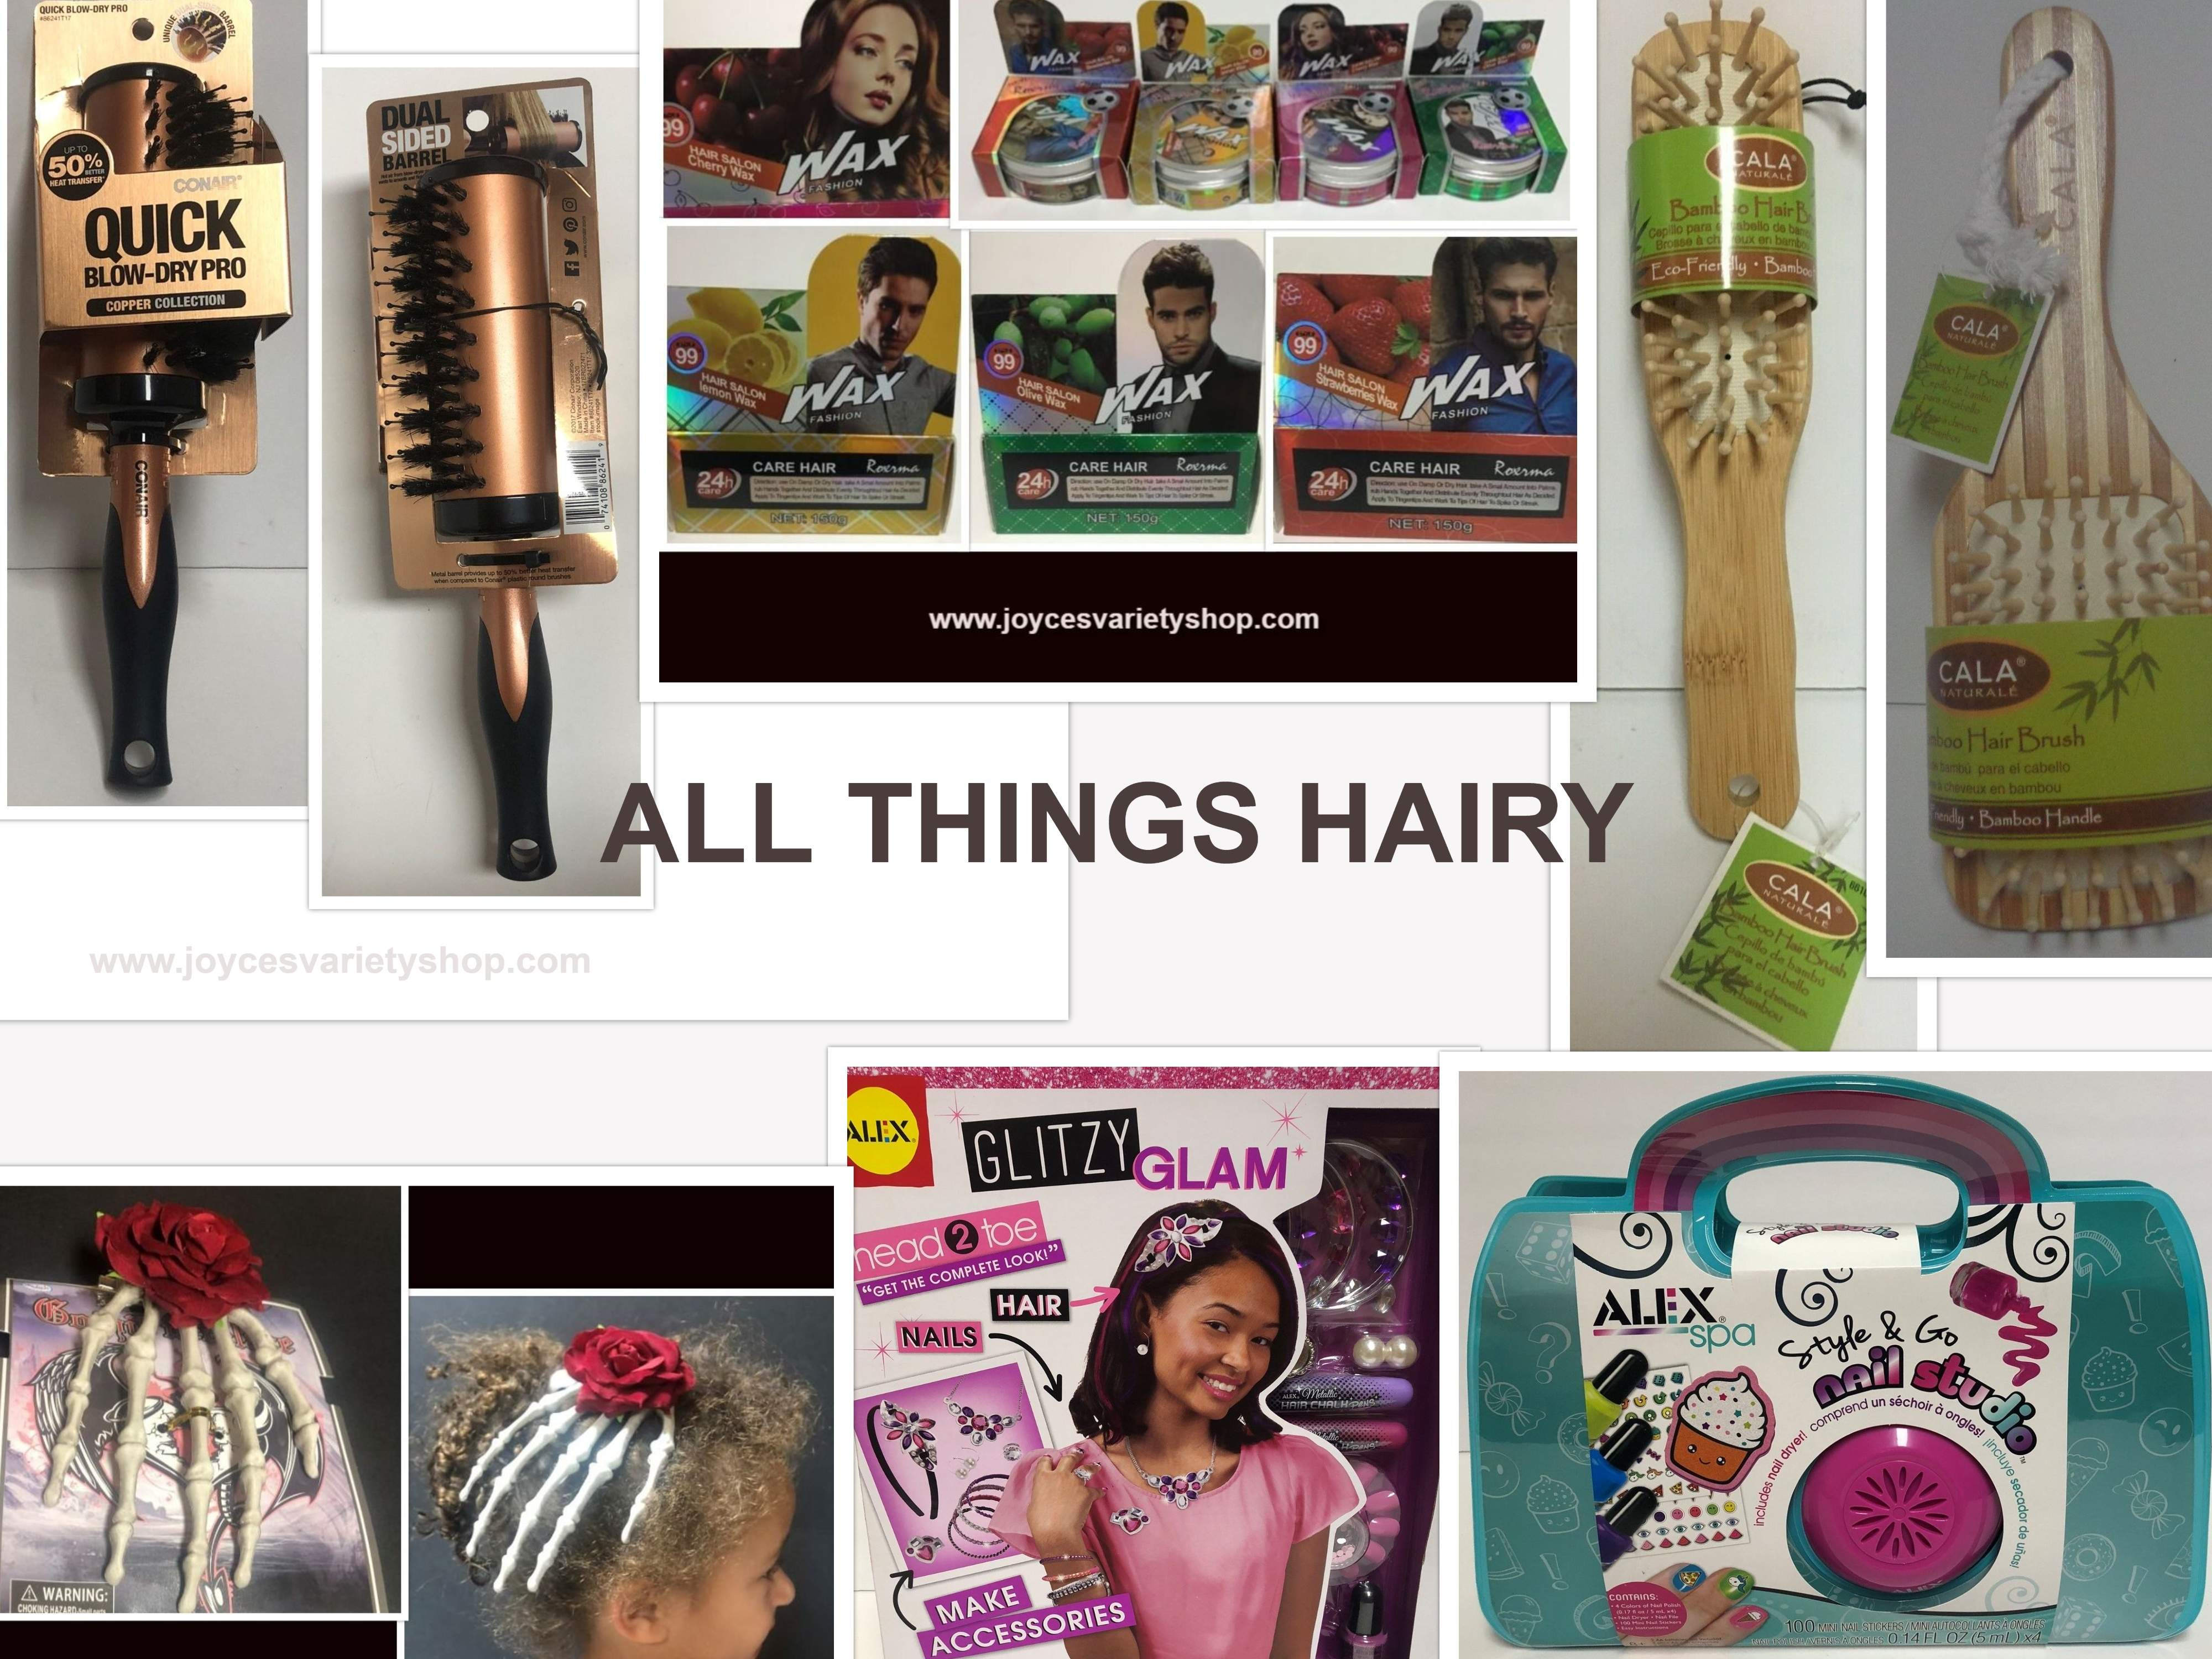 Conair Cala Bamboo Brushes Hair Accessories Wax Girls Alex Glam